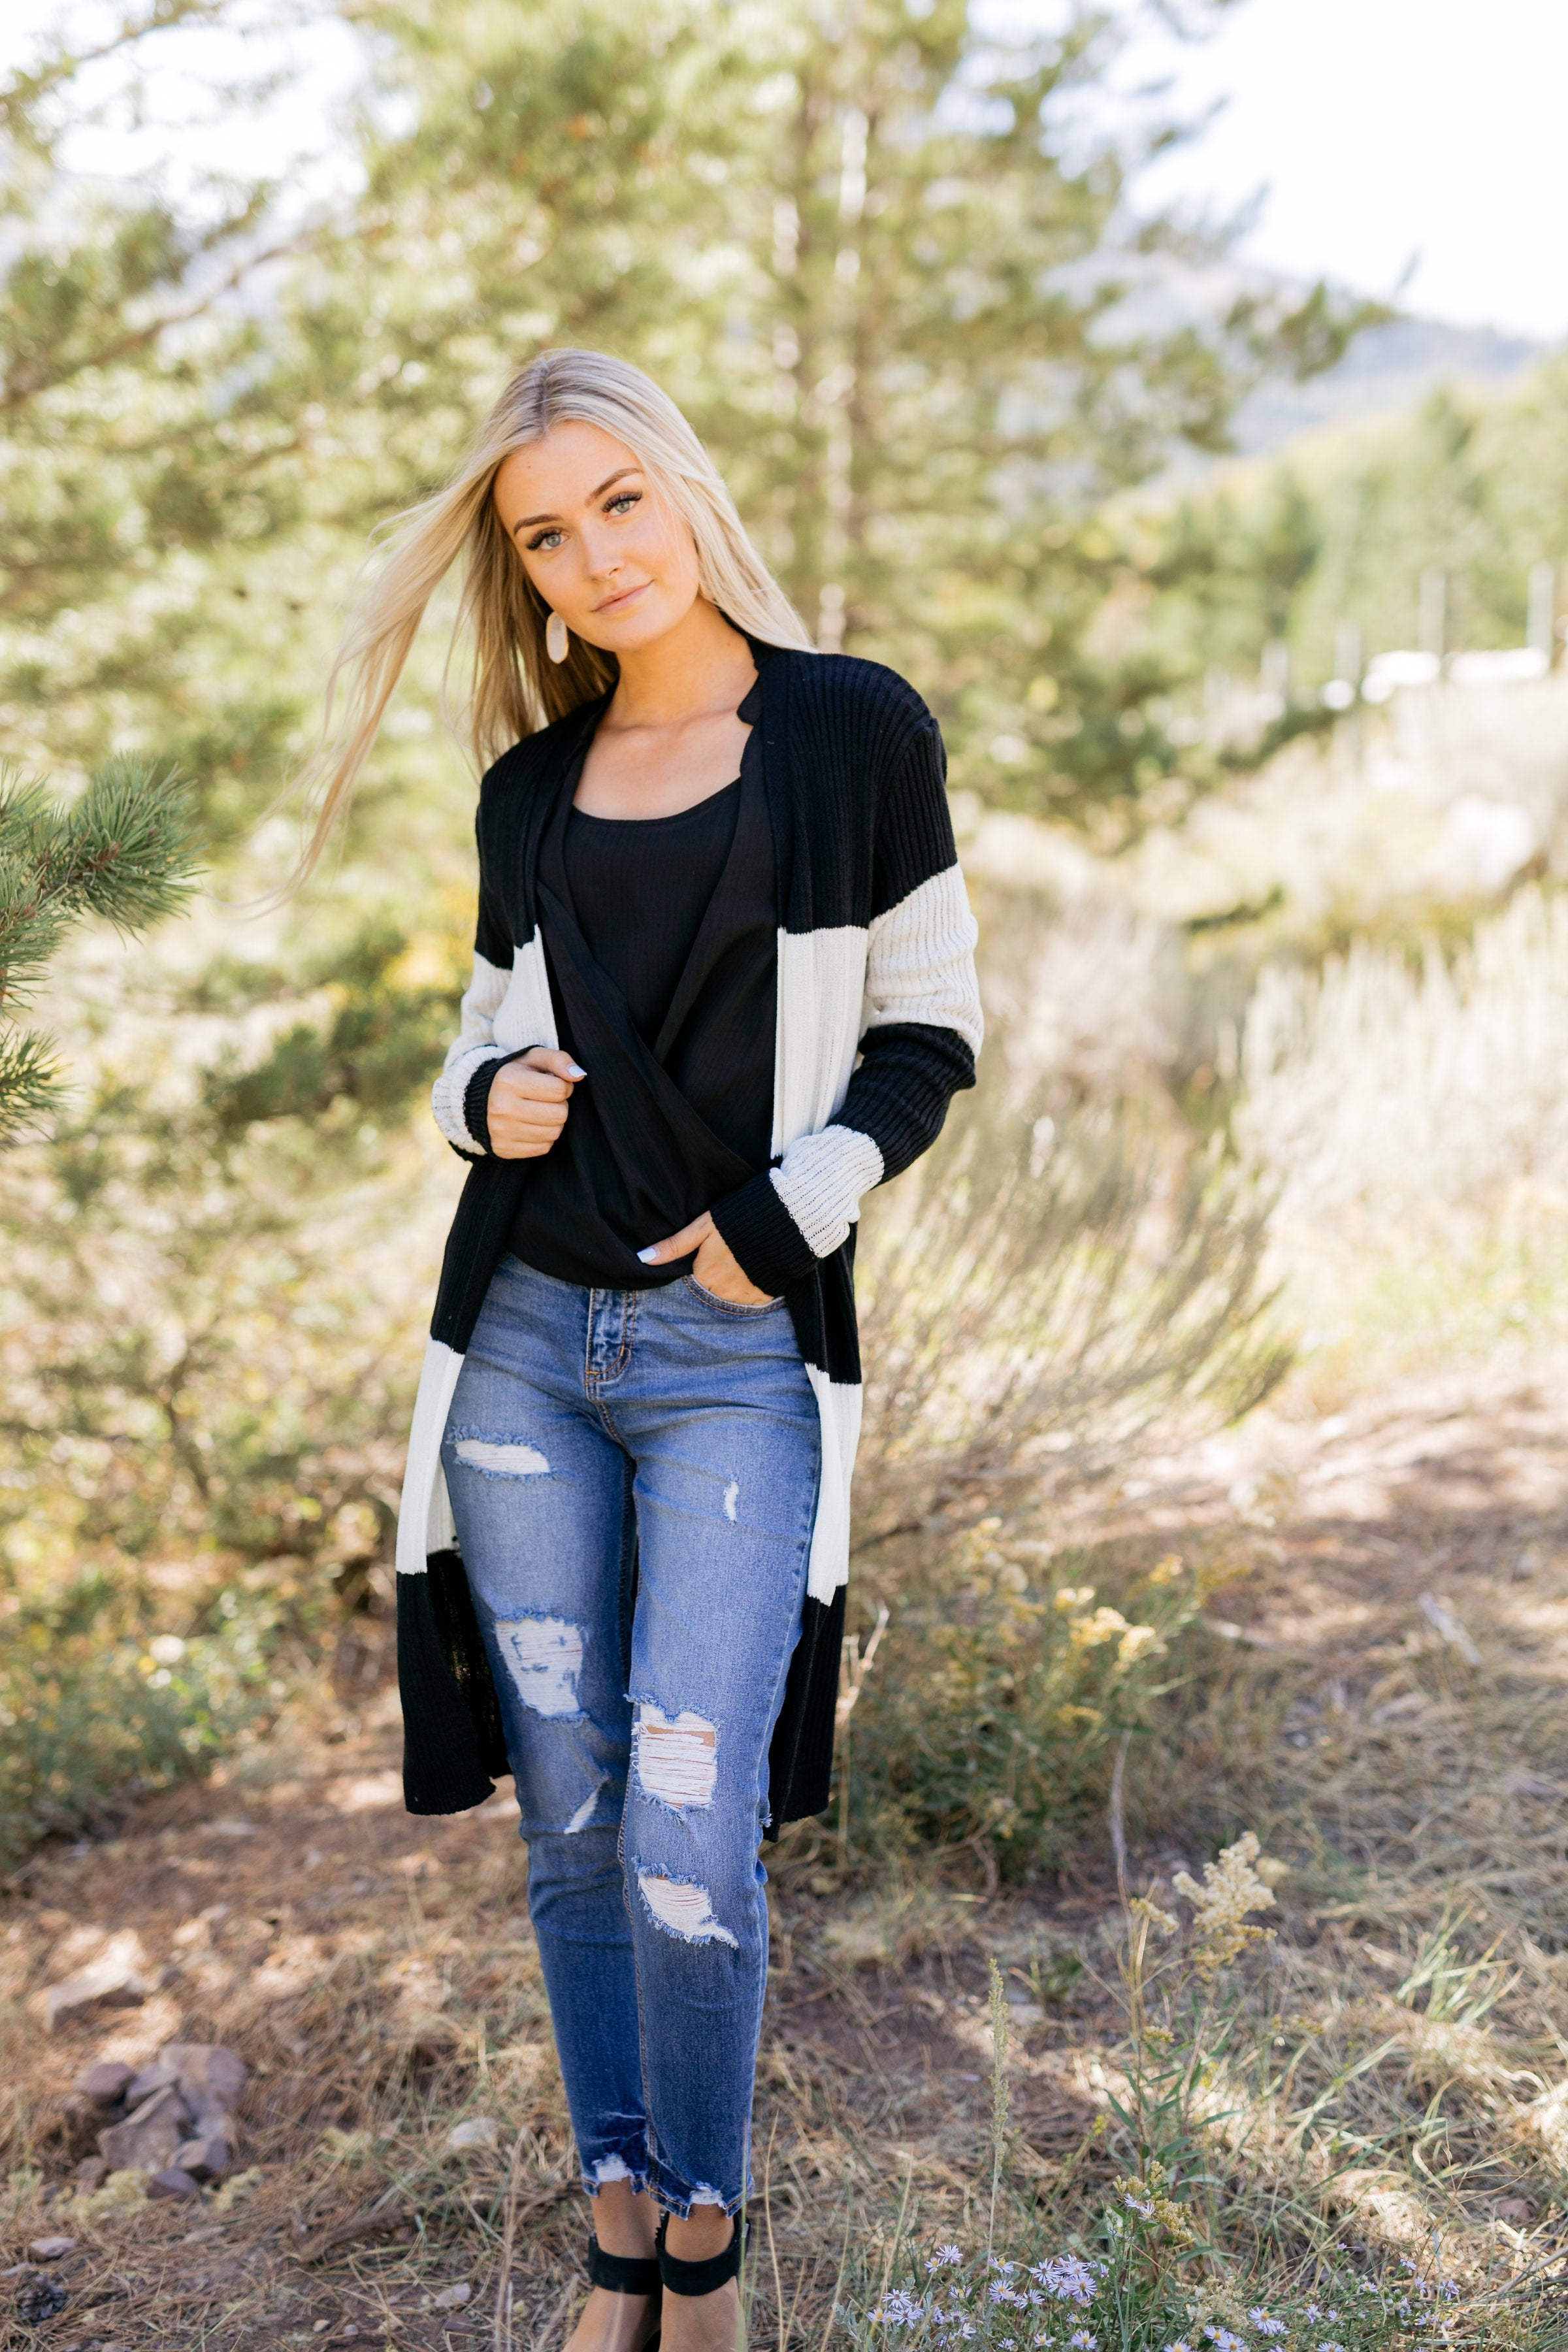 Look To The Cardigan In Black + White